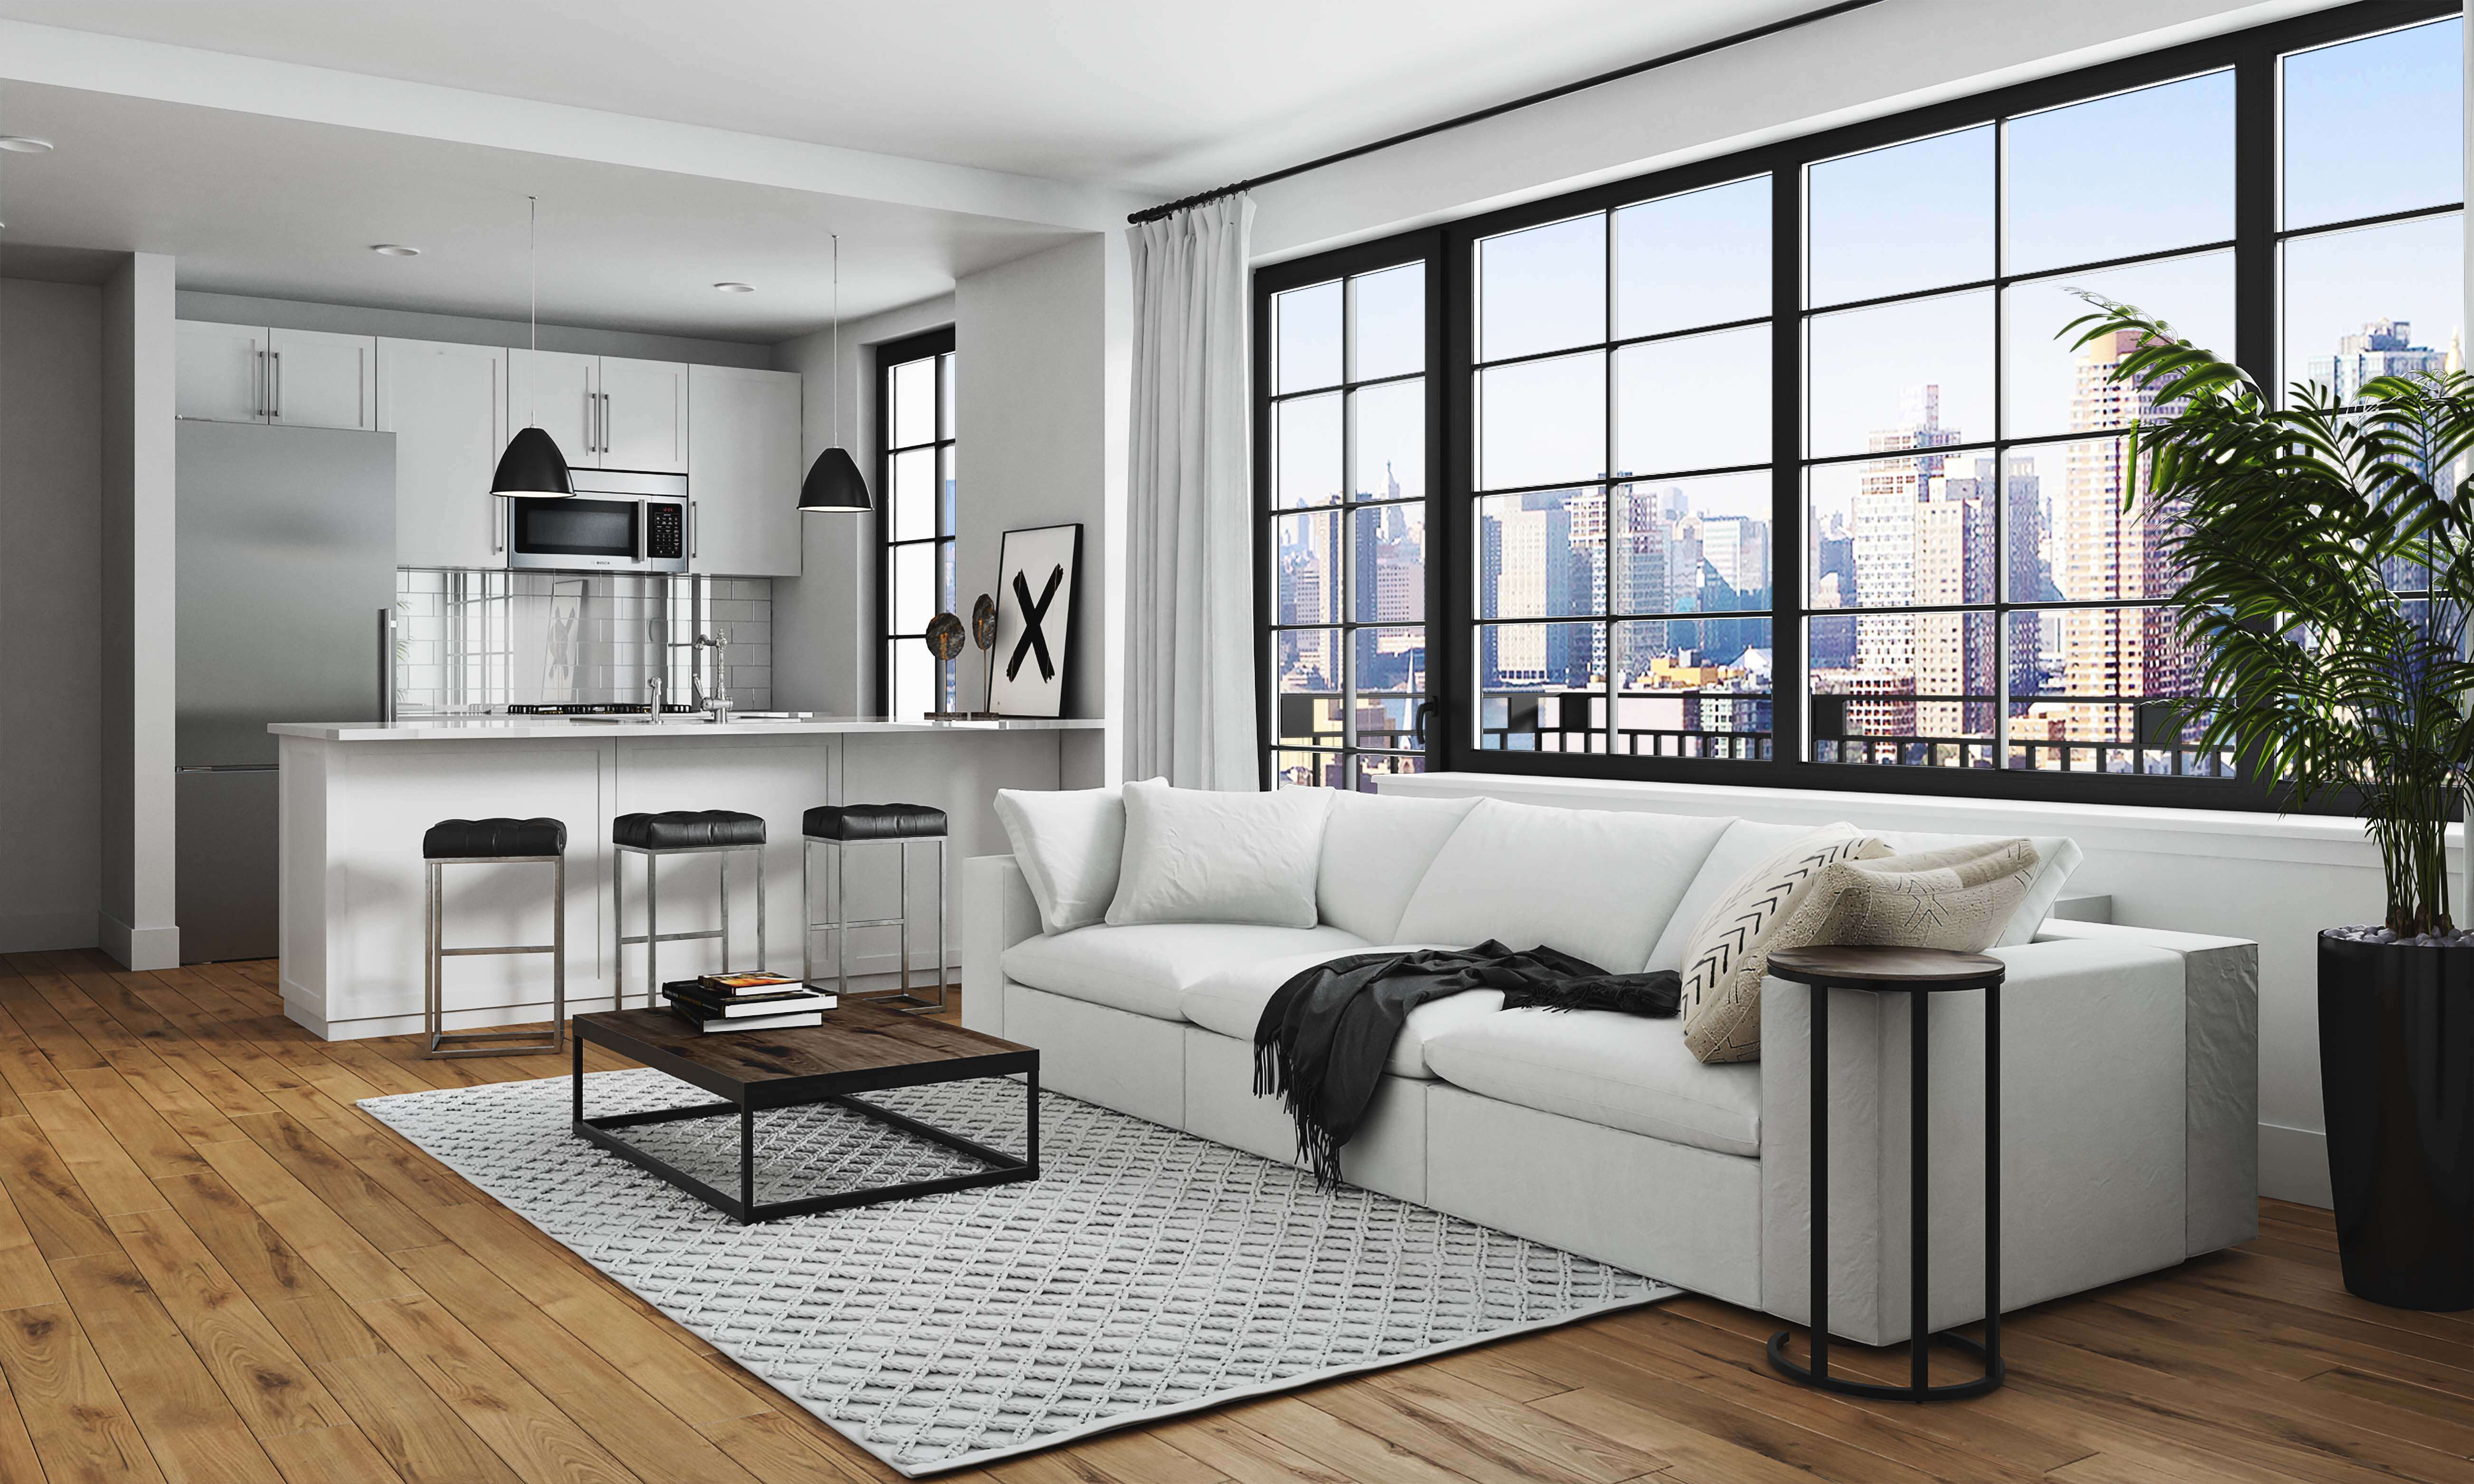 Apartments for sale in Queens LIC Harrison